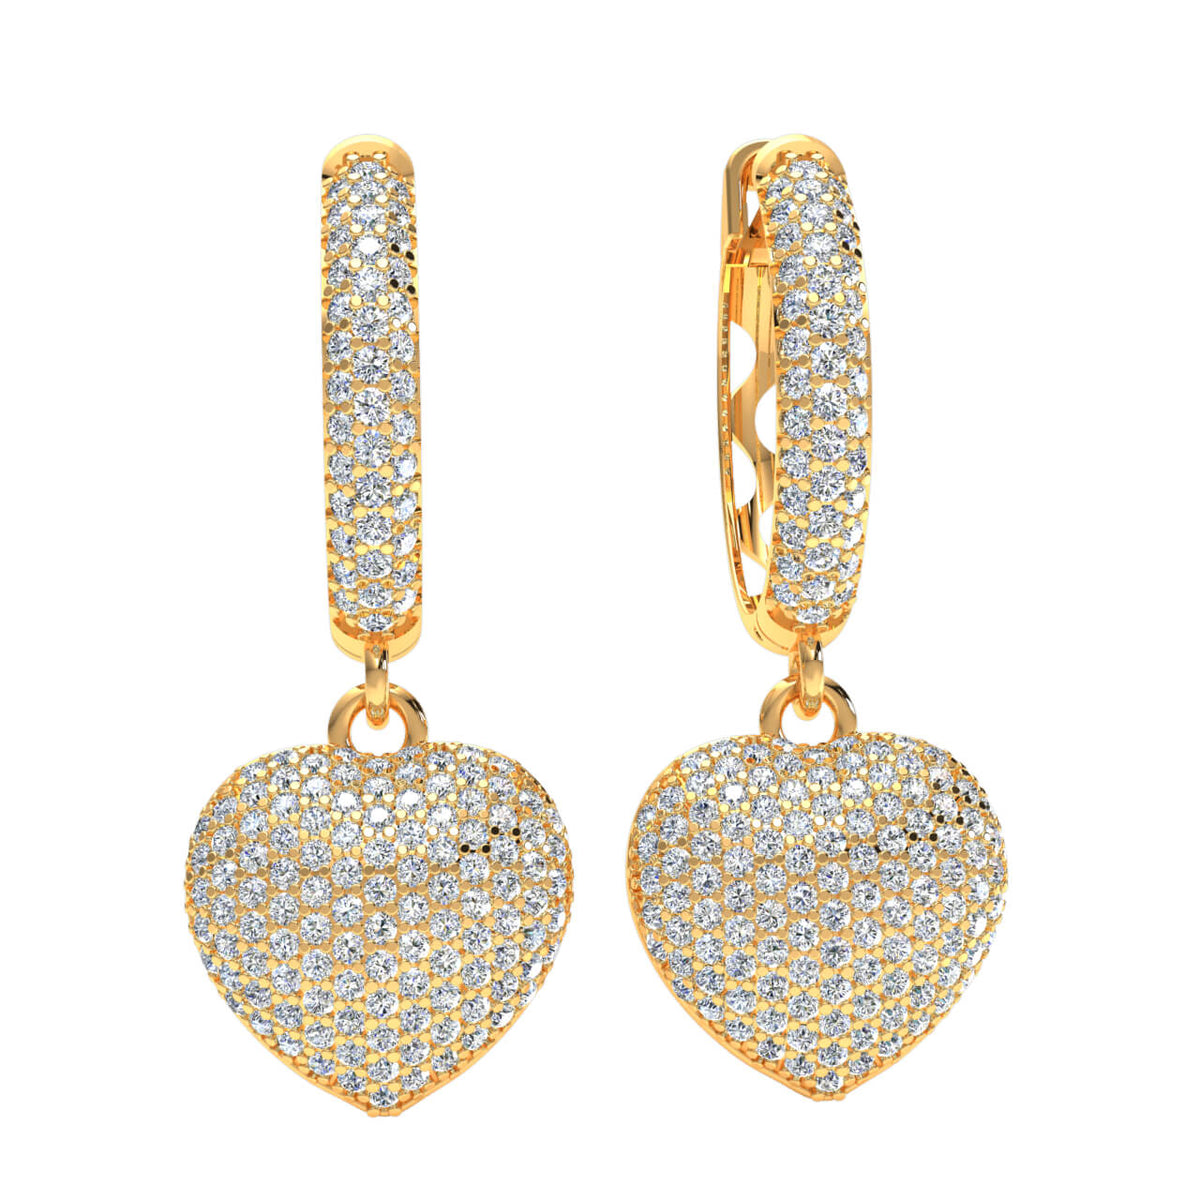 1.20 Ct Heart Cluster Round GH SI1 Diamond Fancy Earrings 14k Gold